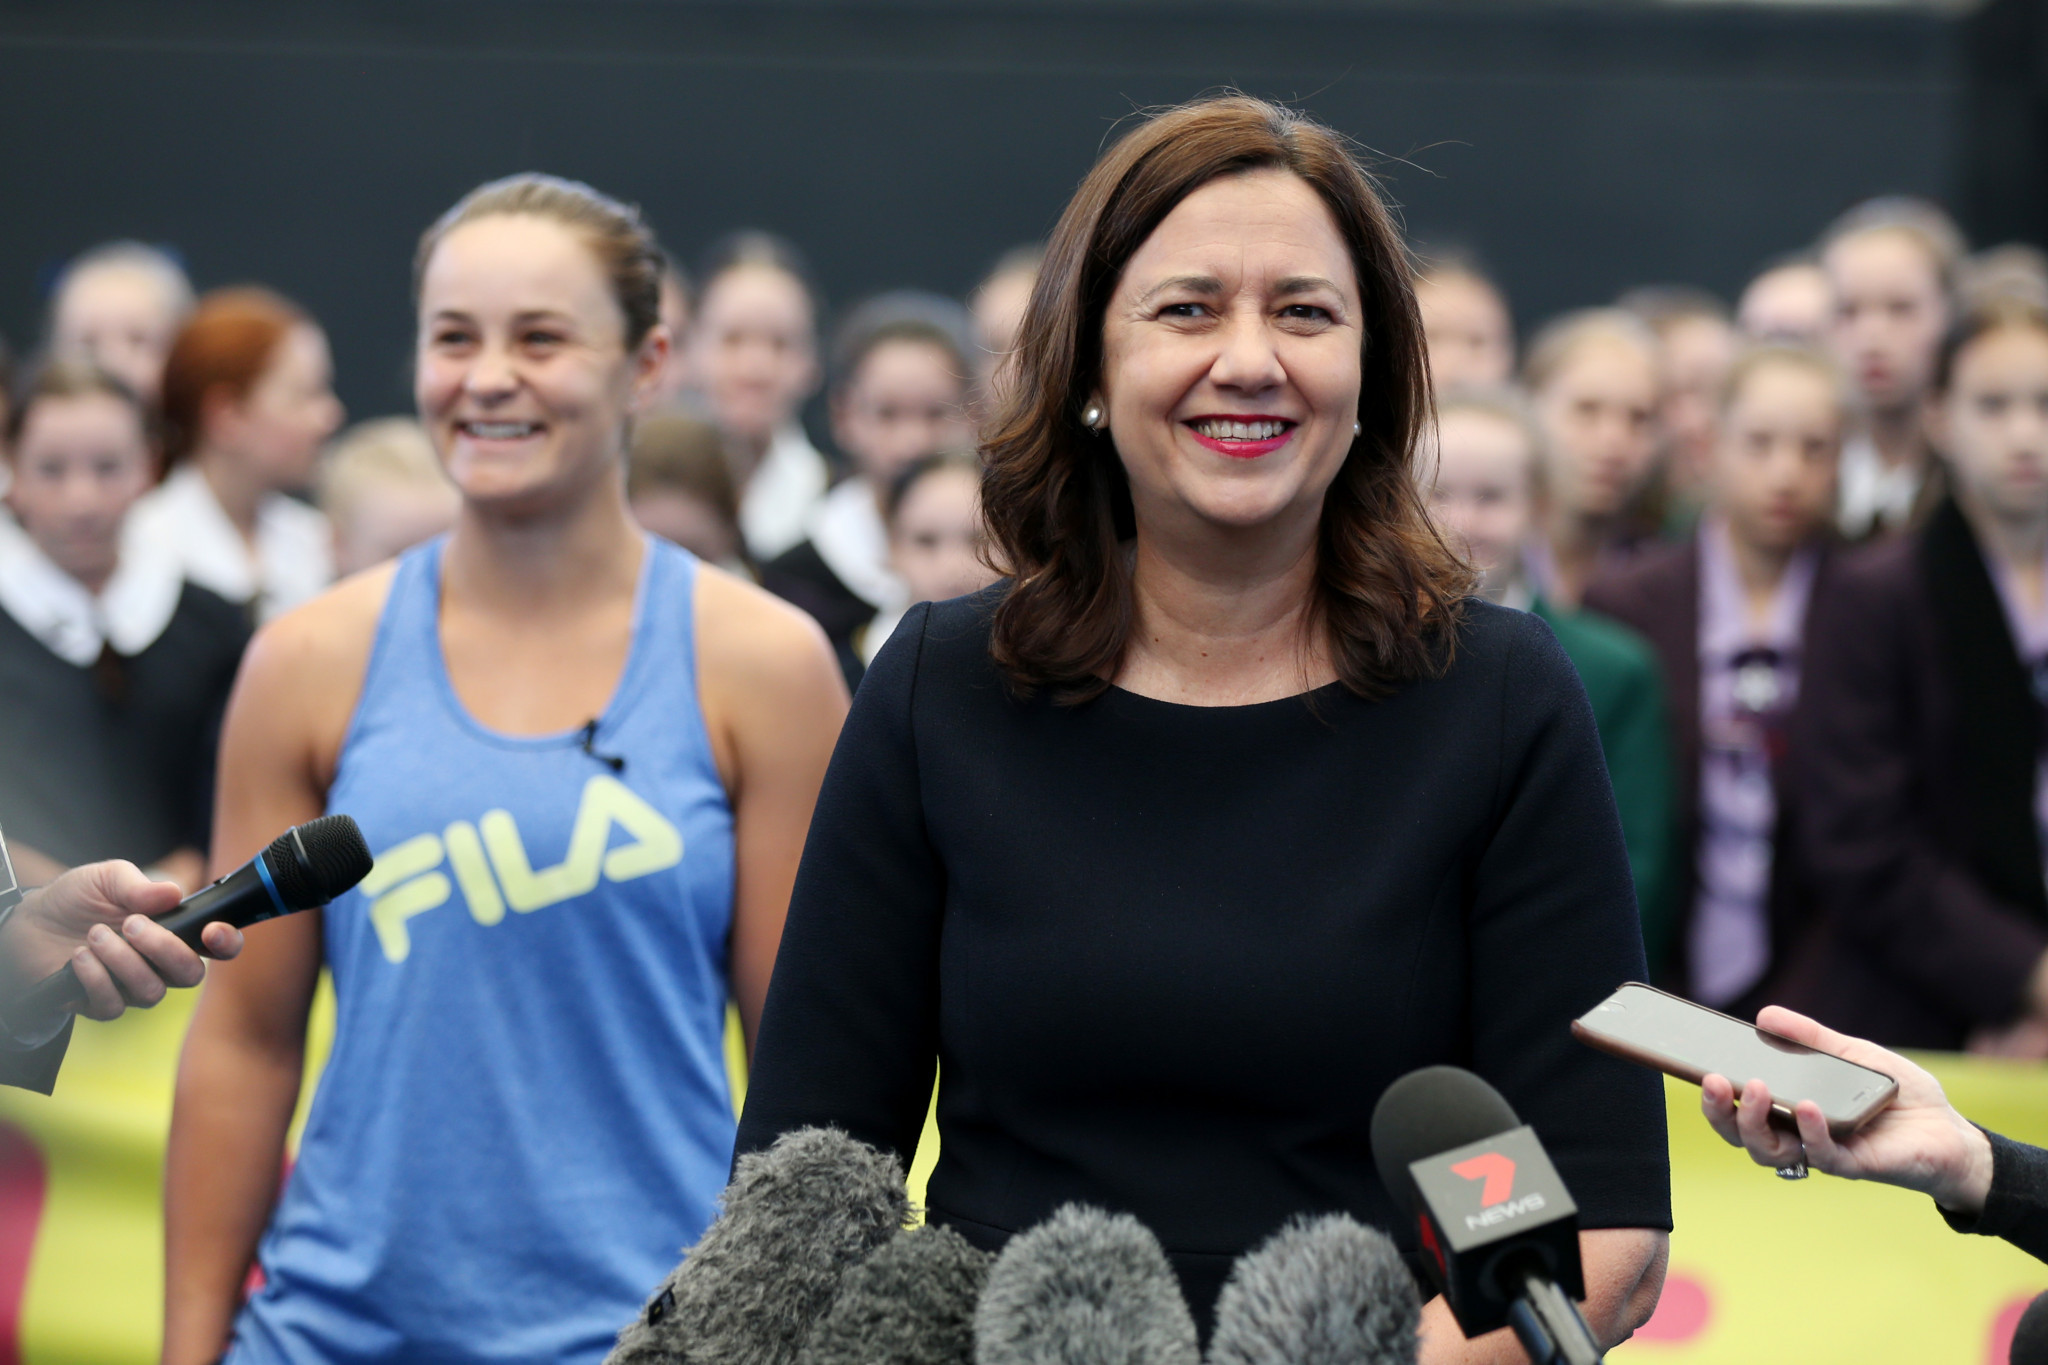 Queensland Premier Annastacia Palaszczuk claimed the economic benefits from hosting the Games would be